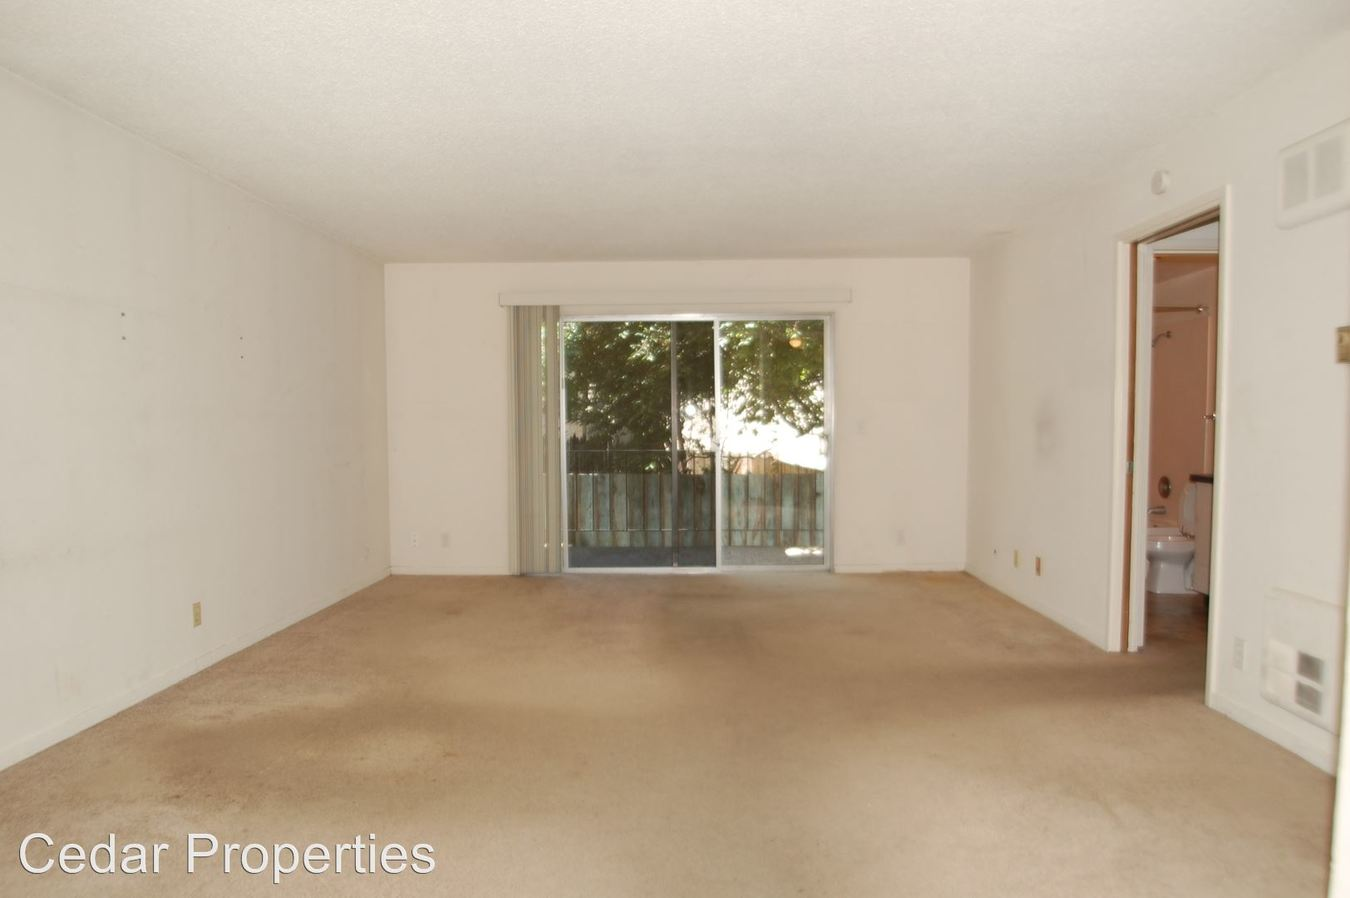 1 Bedroom 1 Bathroom Apartment for rent at 3401 Richmond Blvd in Oakland, CA